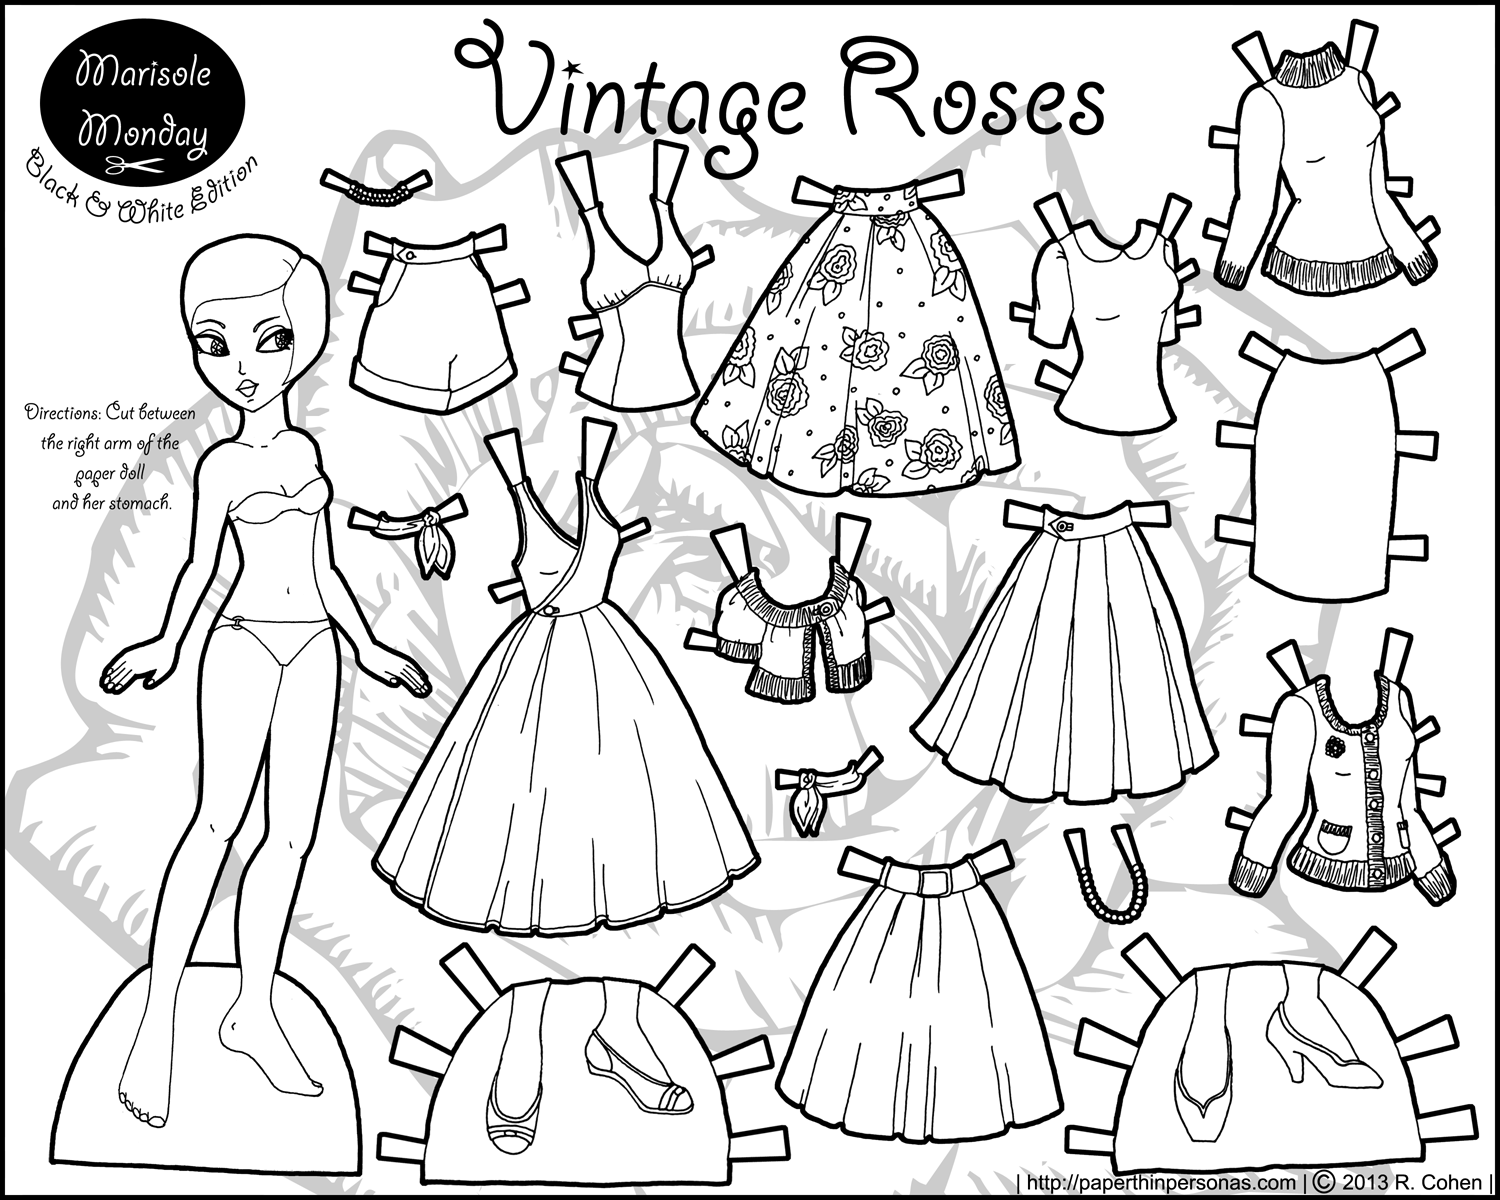 Marisole Monday: Vintage Roses • Paper Thin Personas